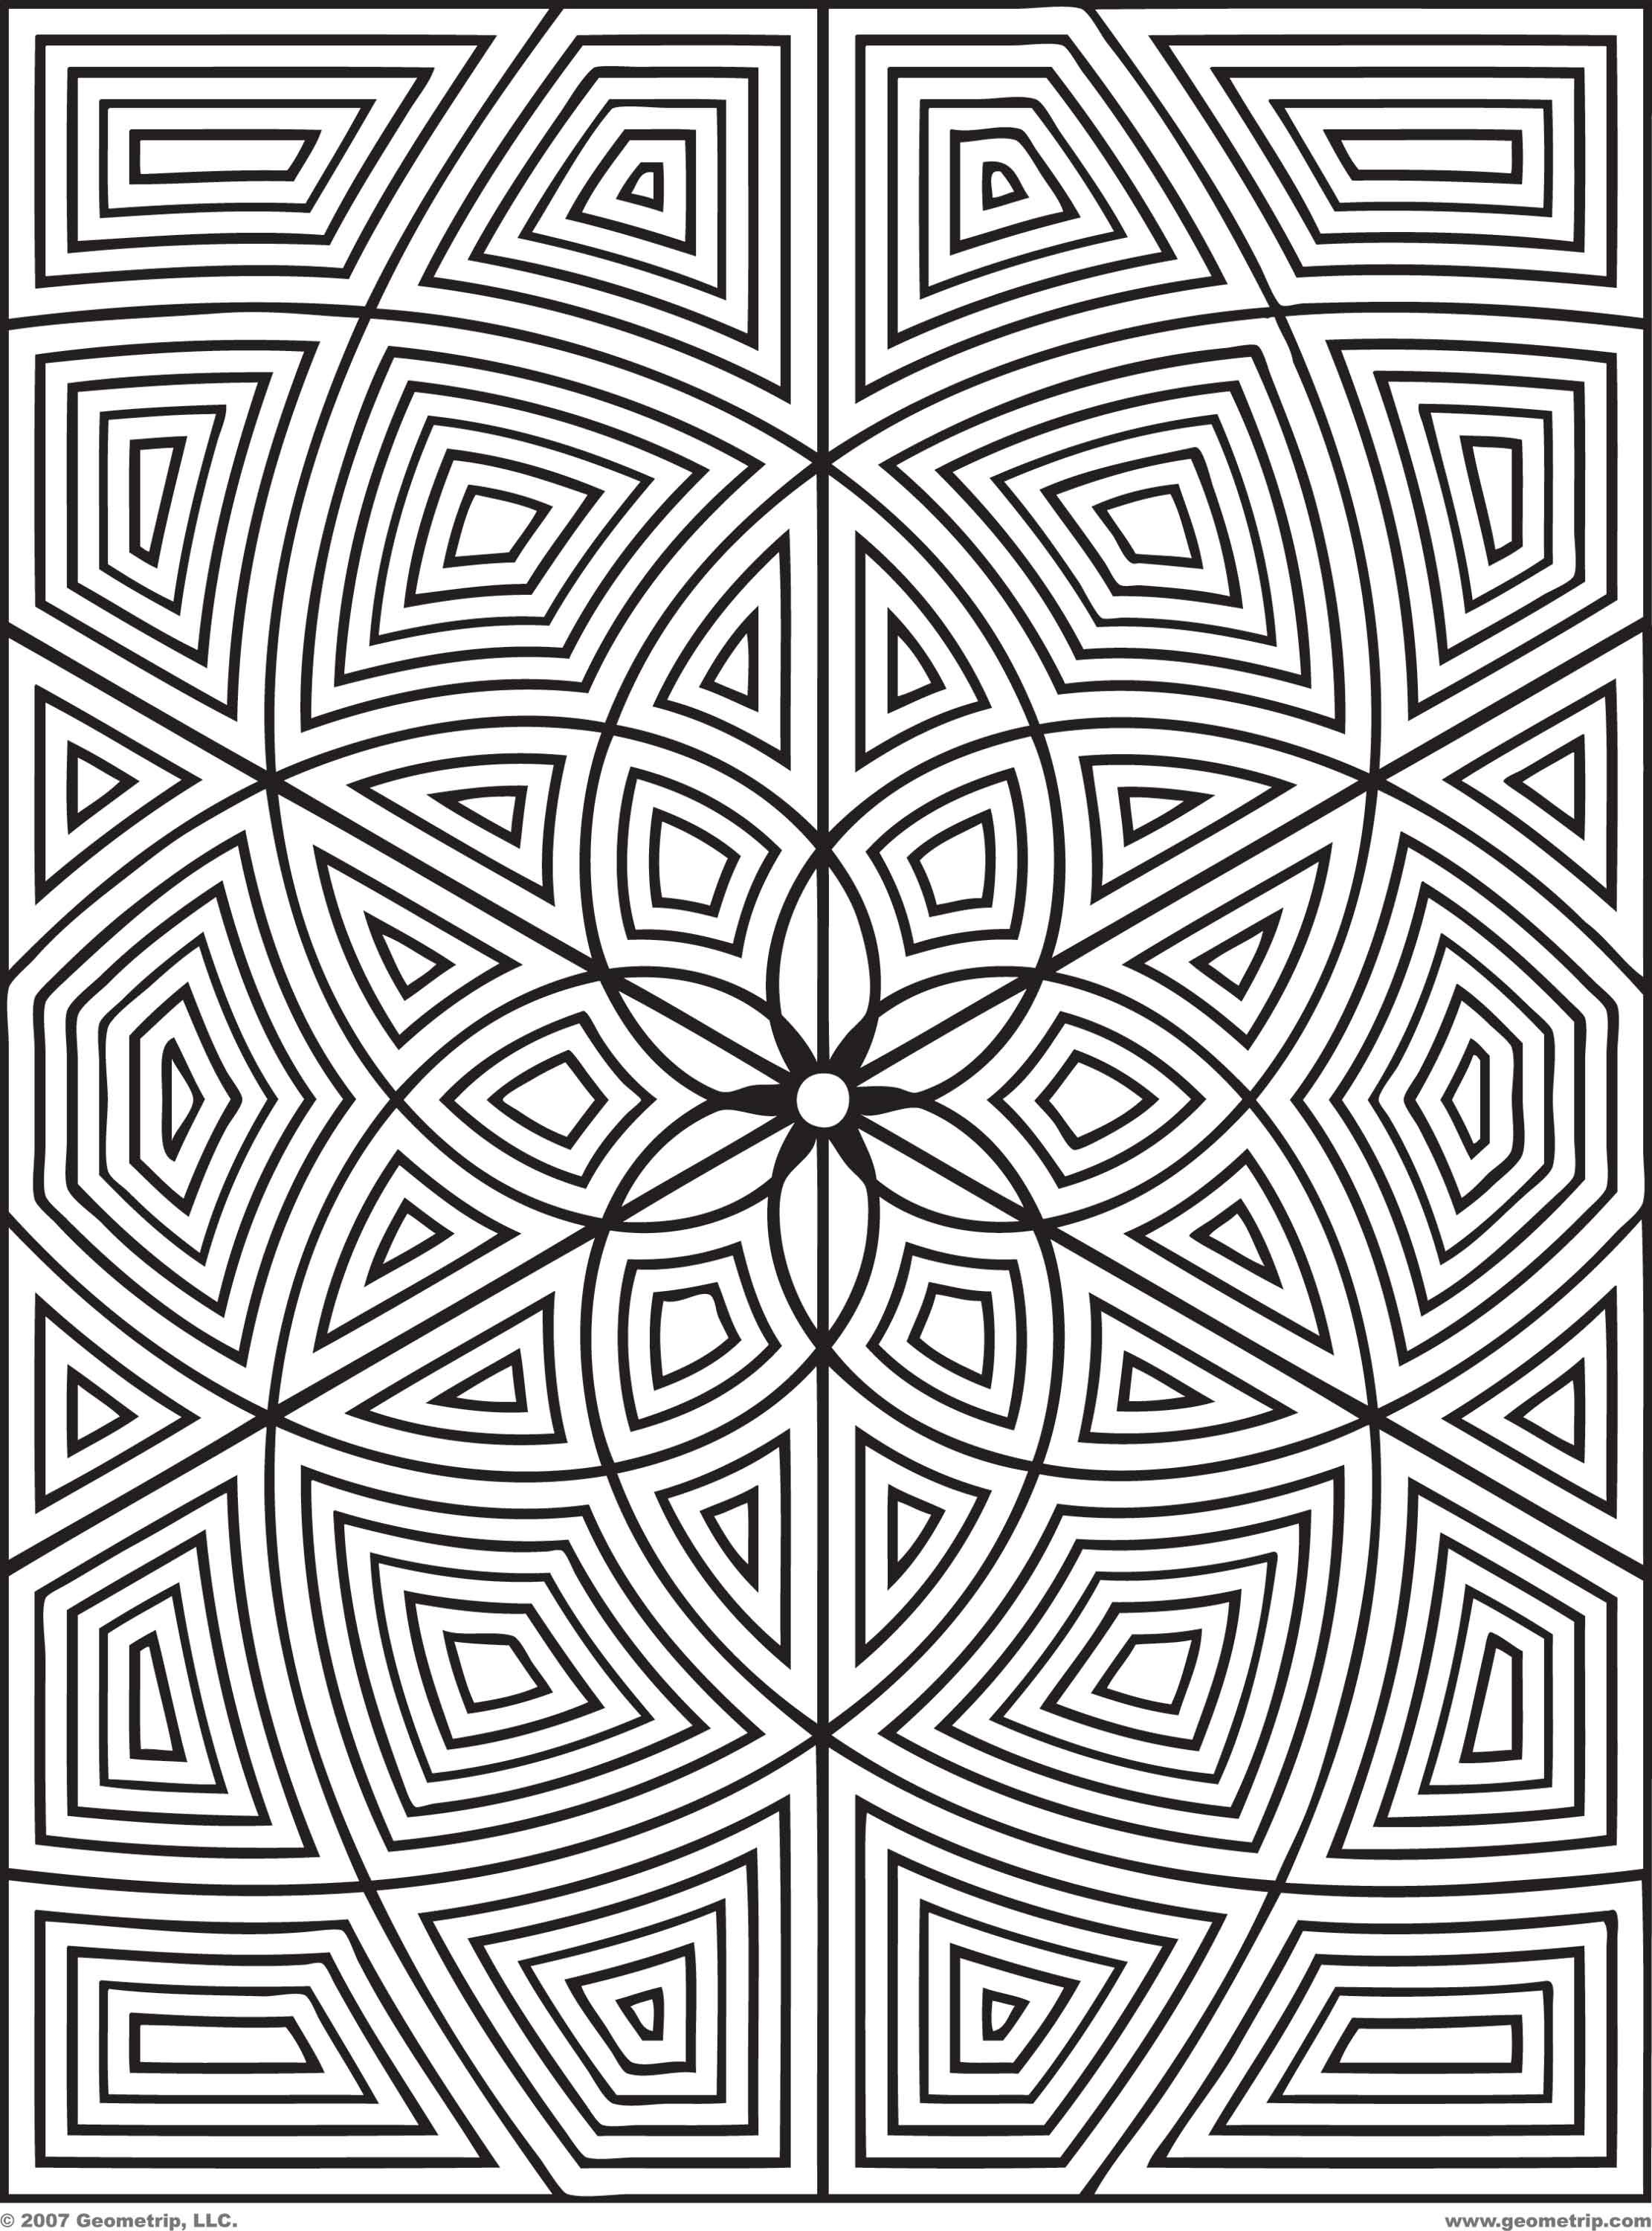 free geometric design coloring pages images crazy gallery - Geometric Coloring Pages